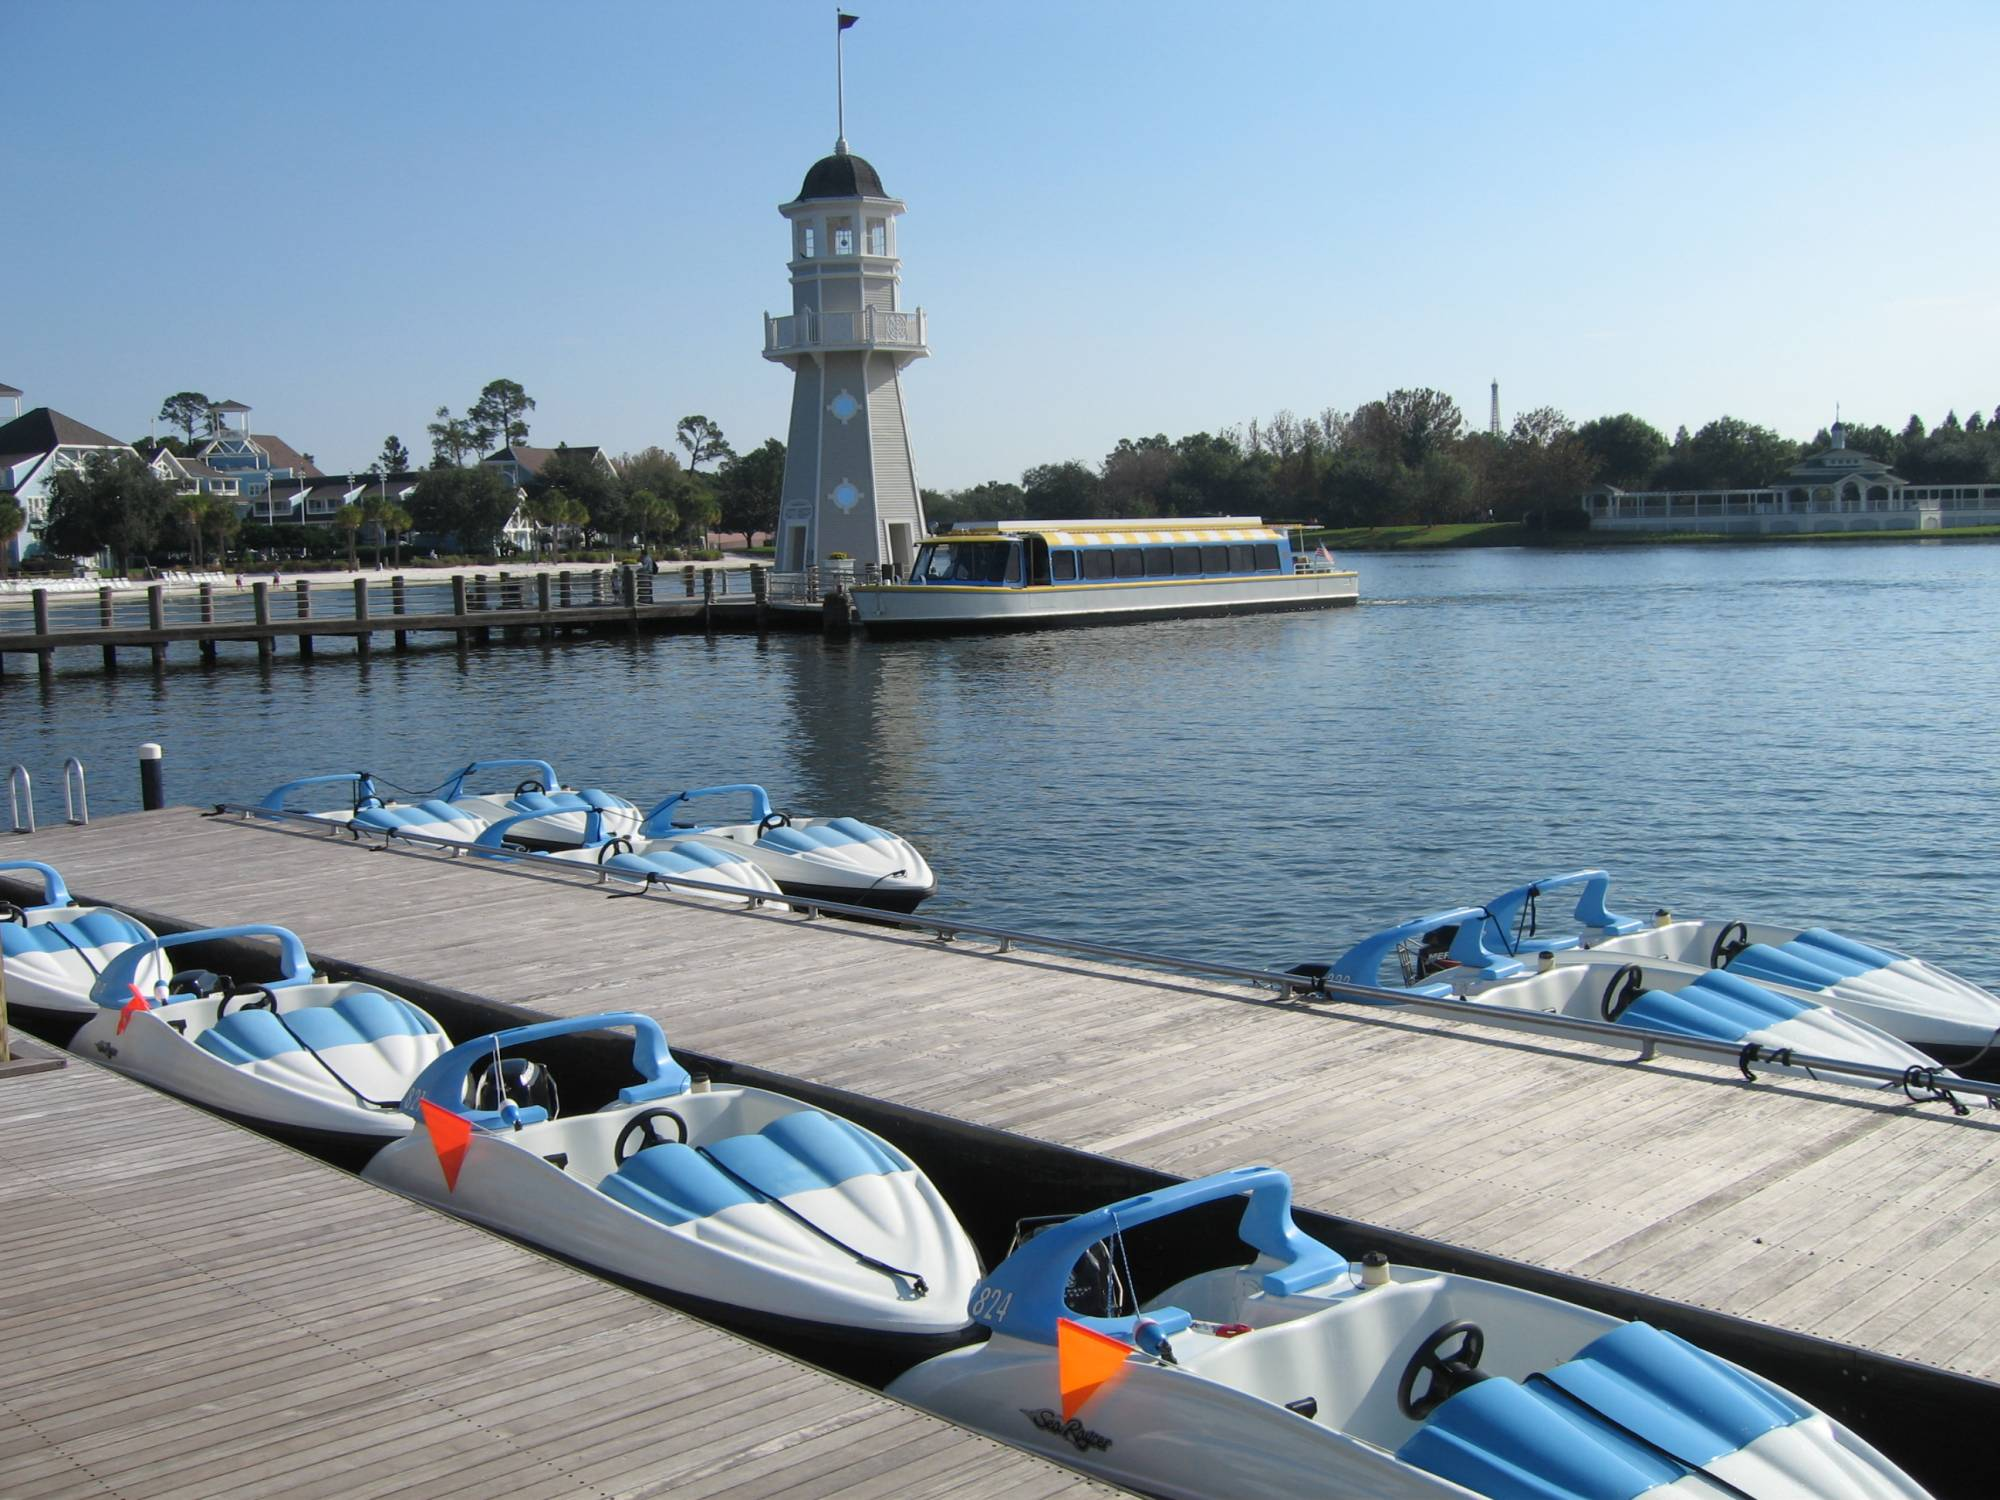 Explore the waterways of Walt Disney World by Boat! |PassPorter.com